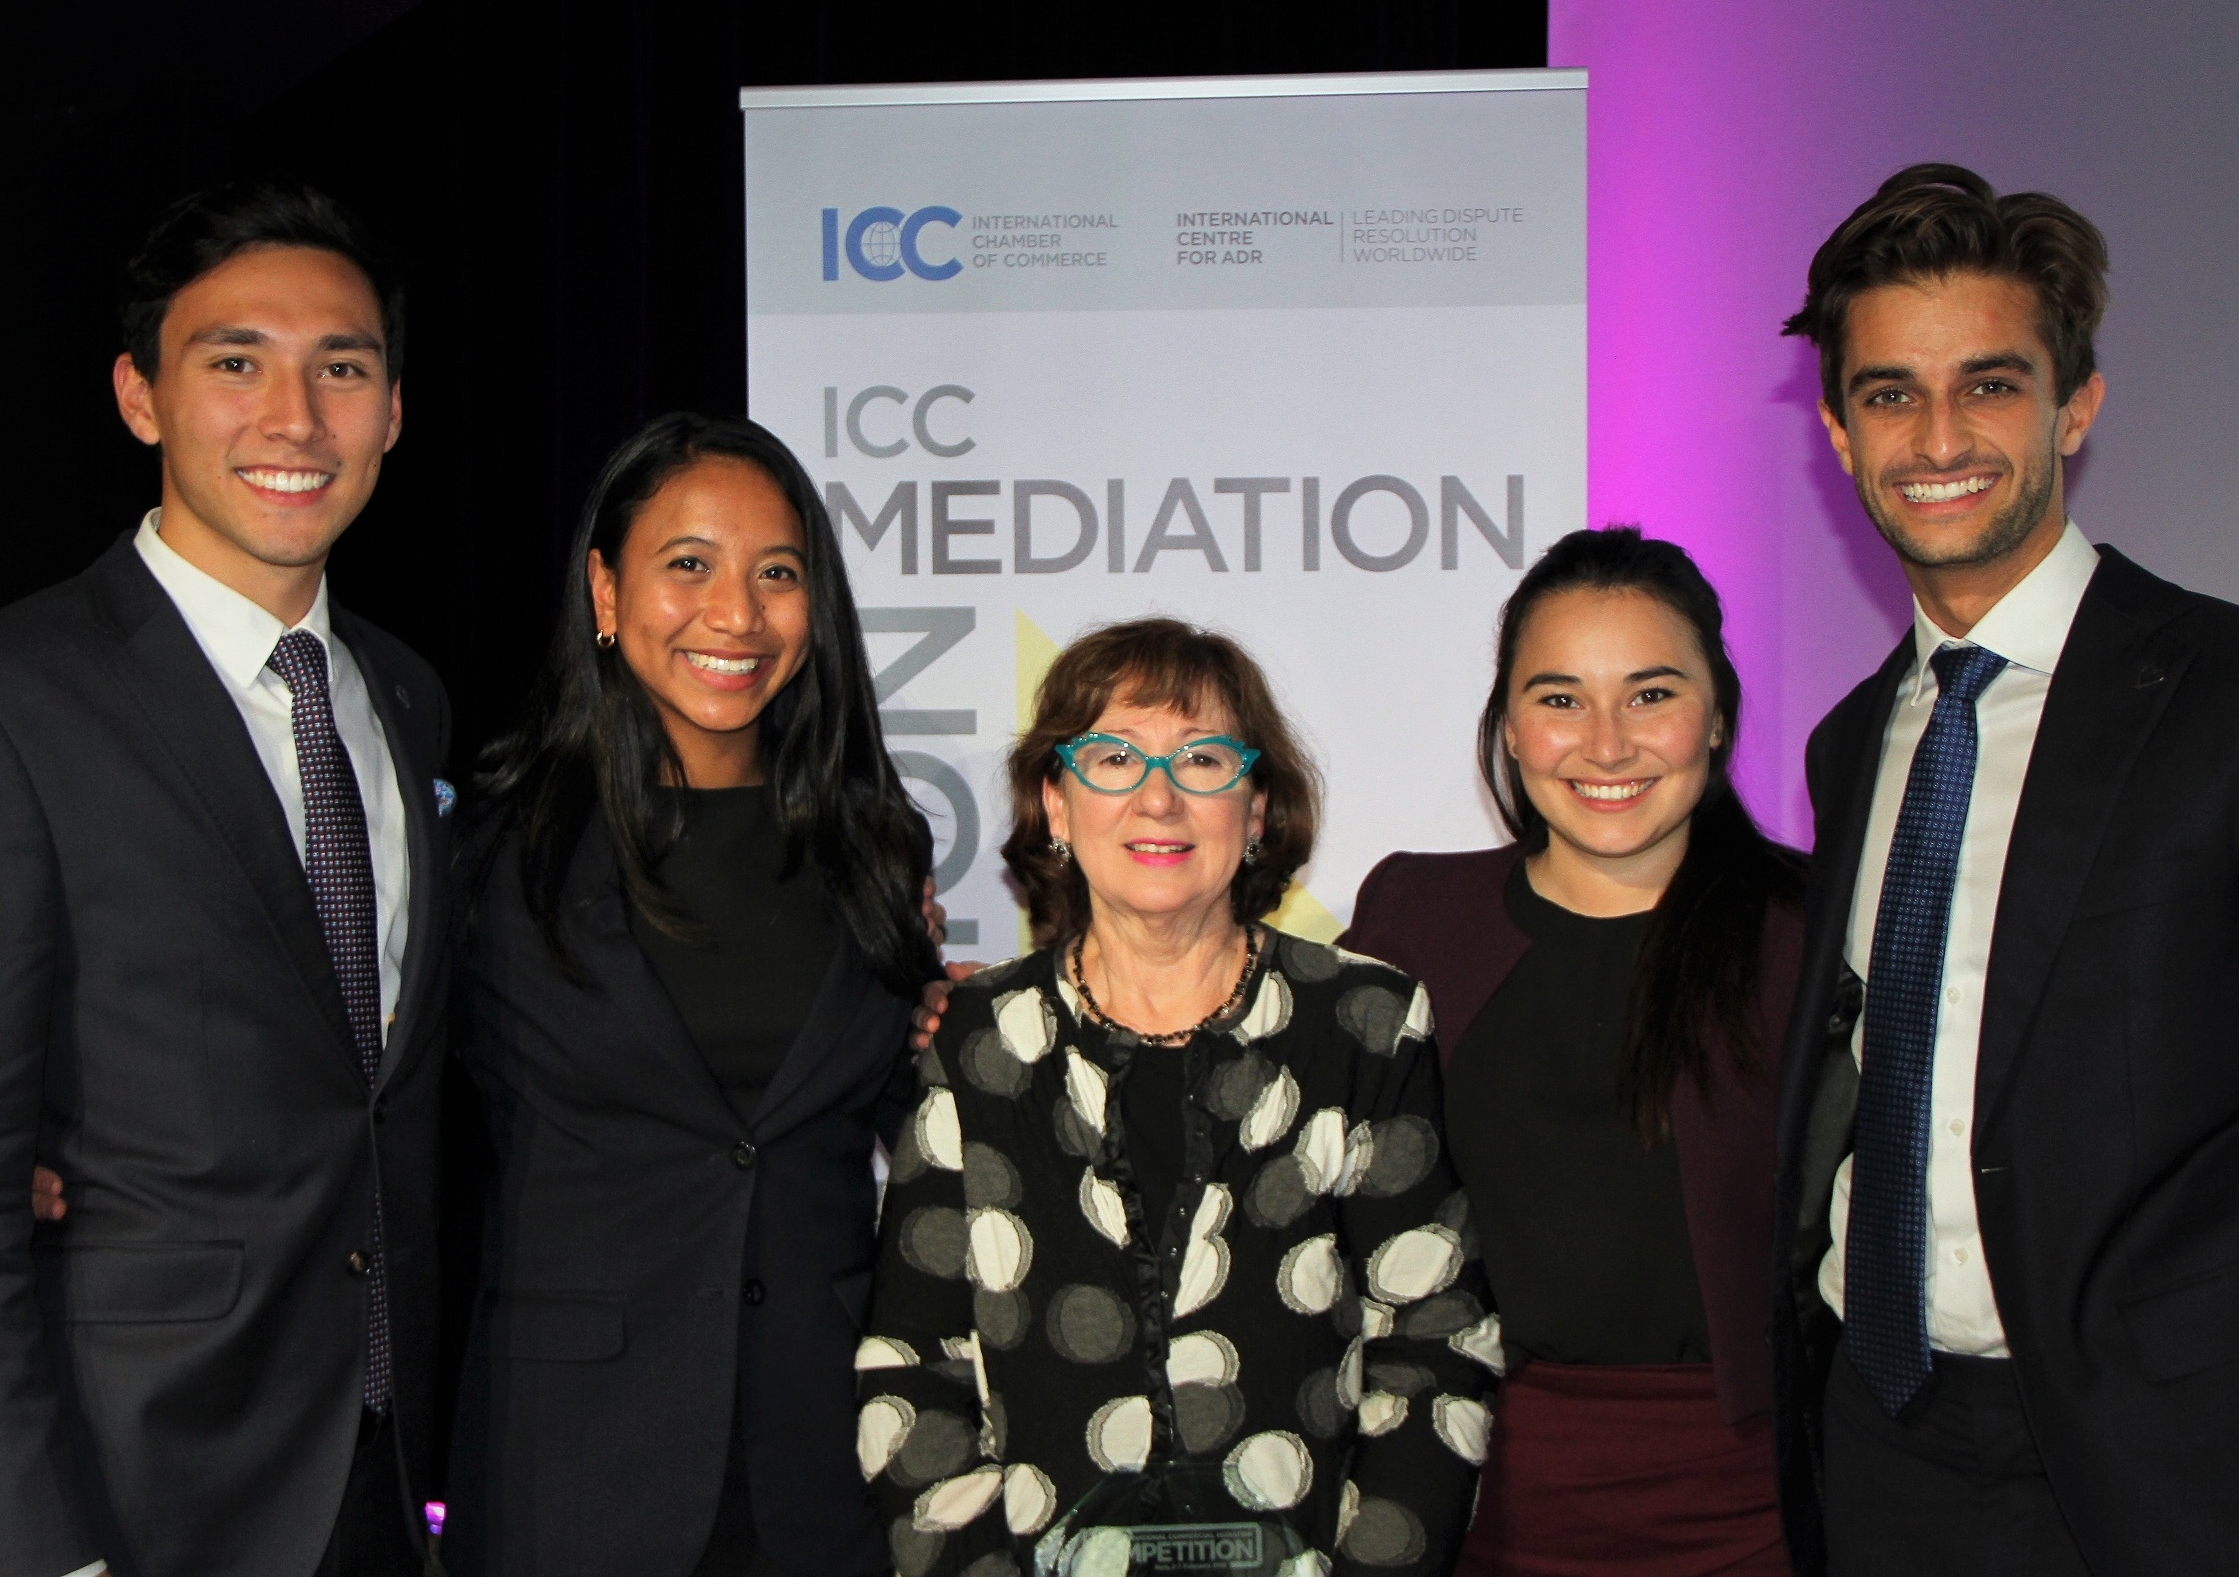 Winning team: (From left) Jack Rathie, Nadhirah Daud, team coach Dr Rosemary Howell, Brittany Young and Nanak Narulla. Photo: ICC